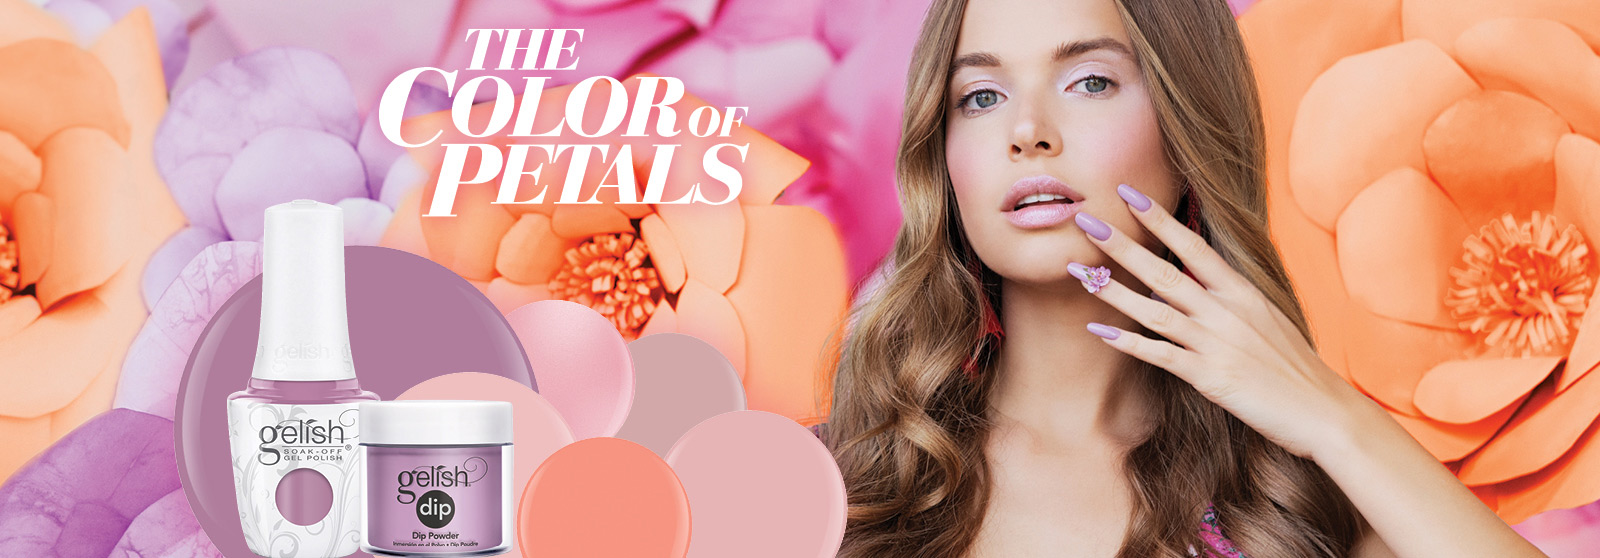 The Color Of Petals Spring 2019